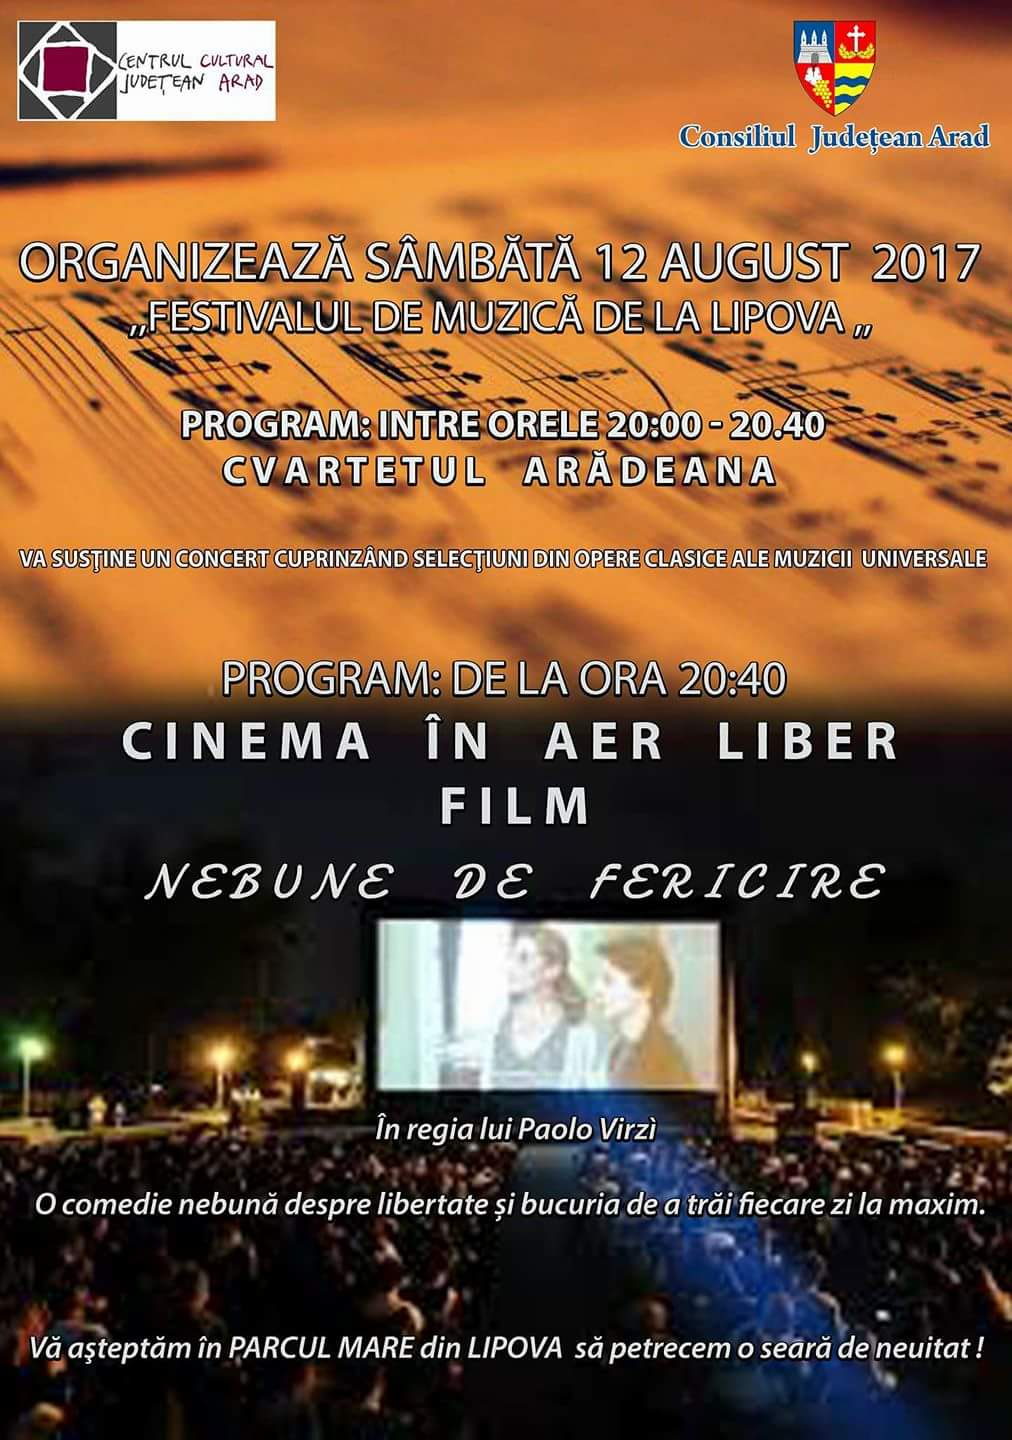 CINEMA AER LIBER